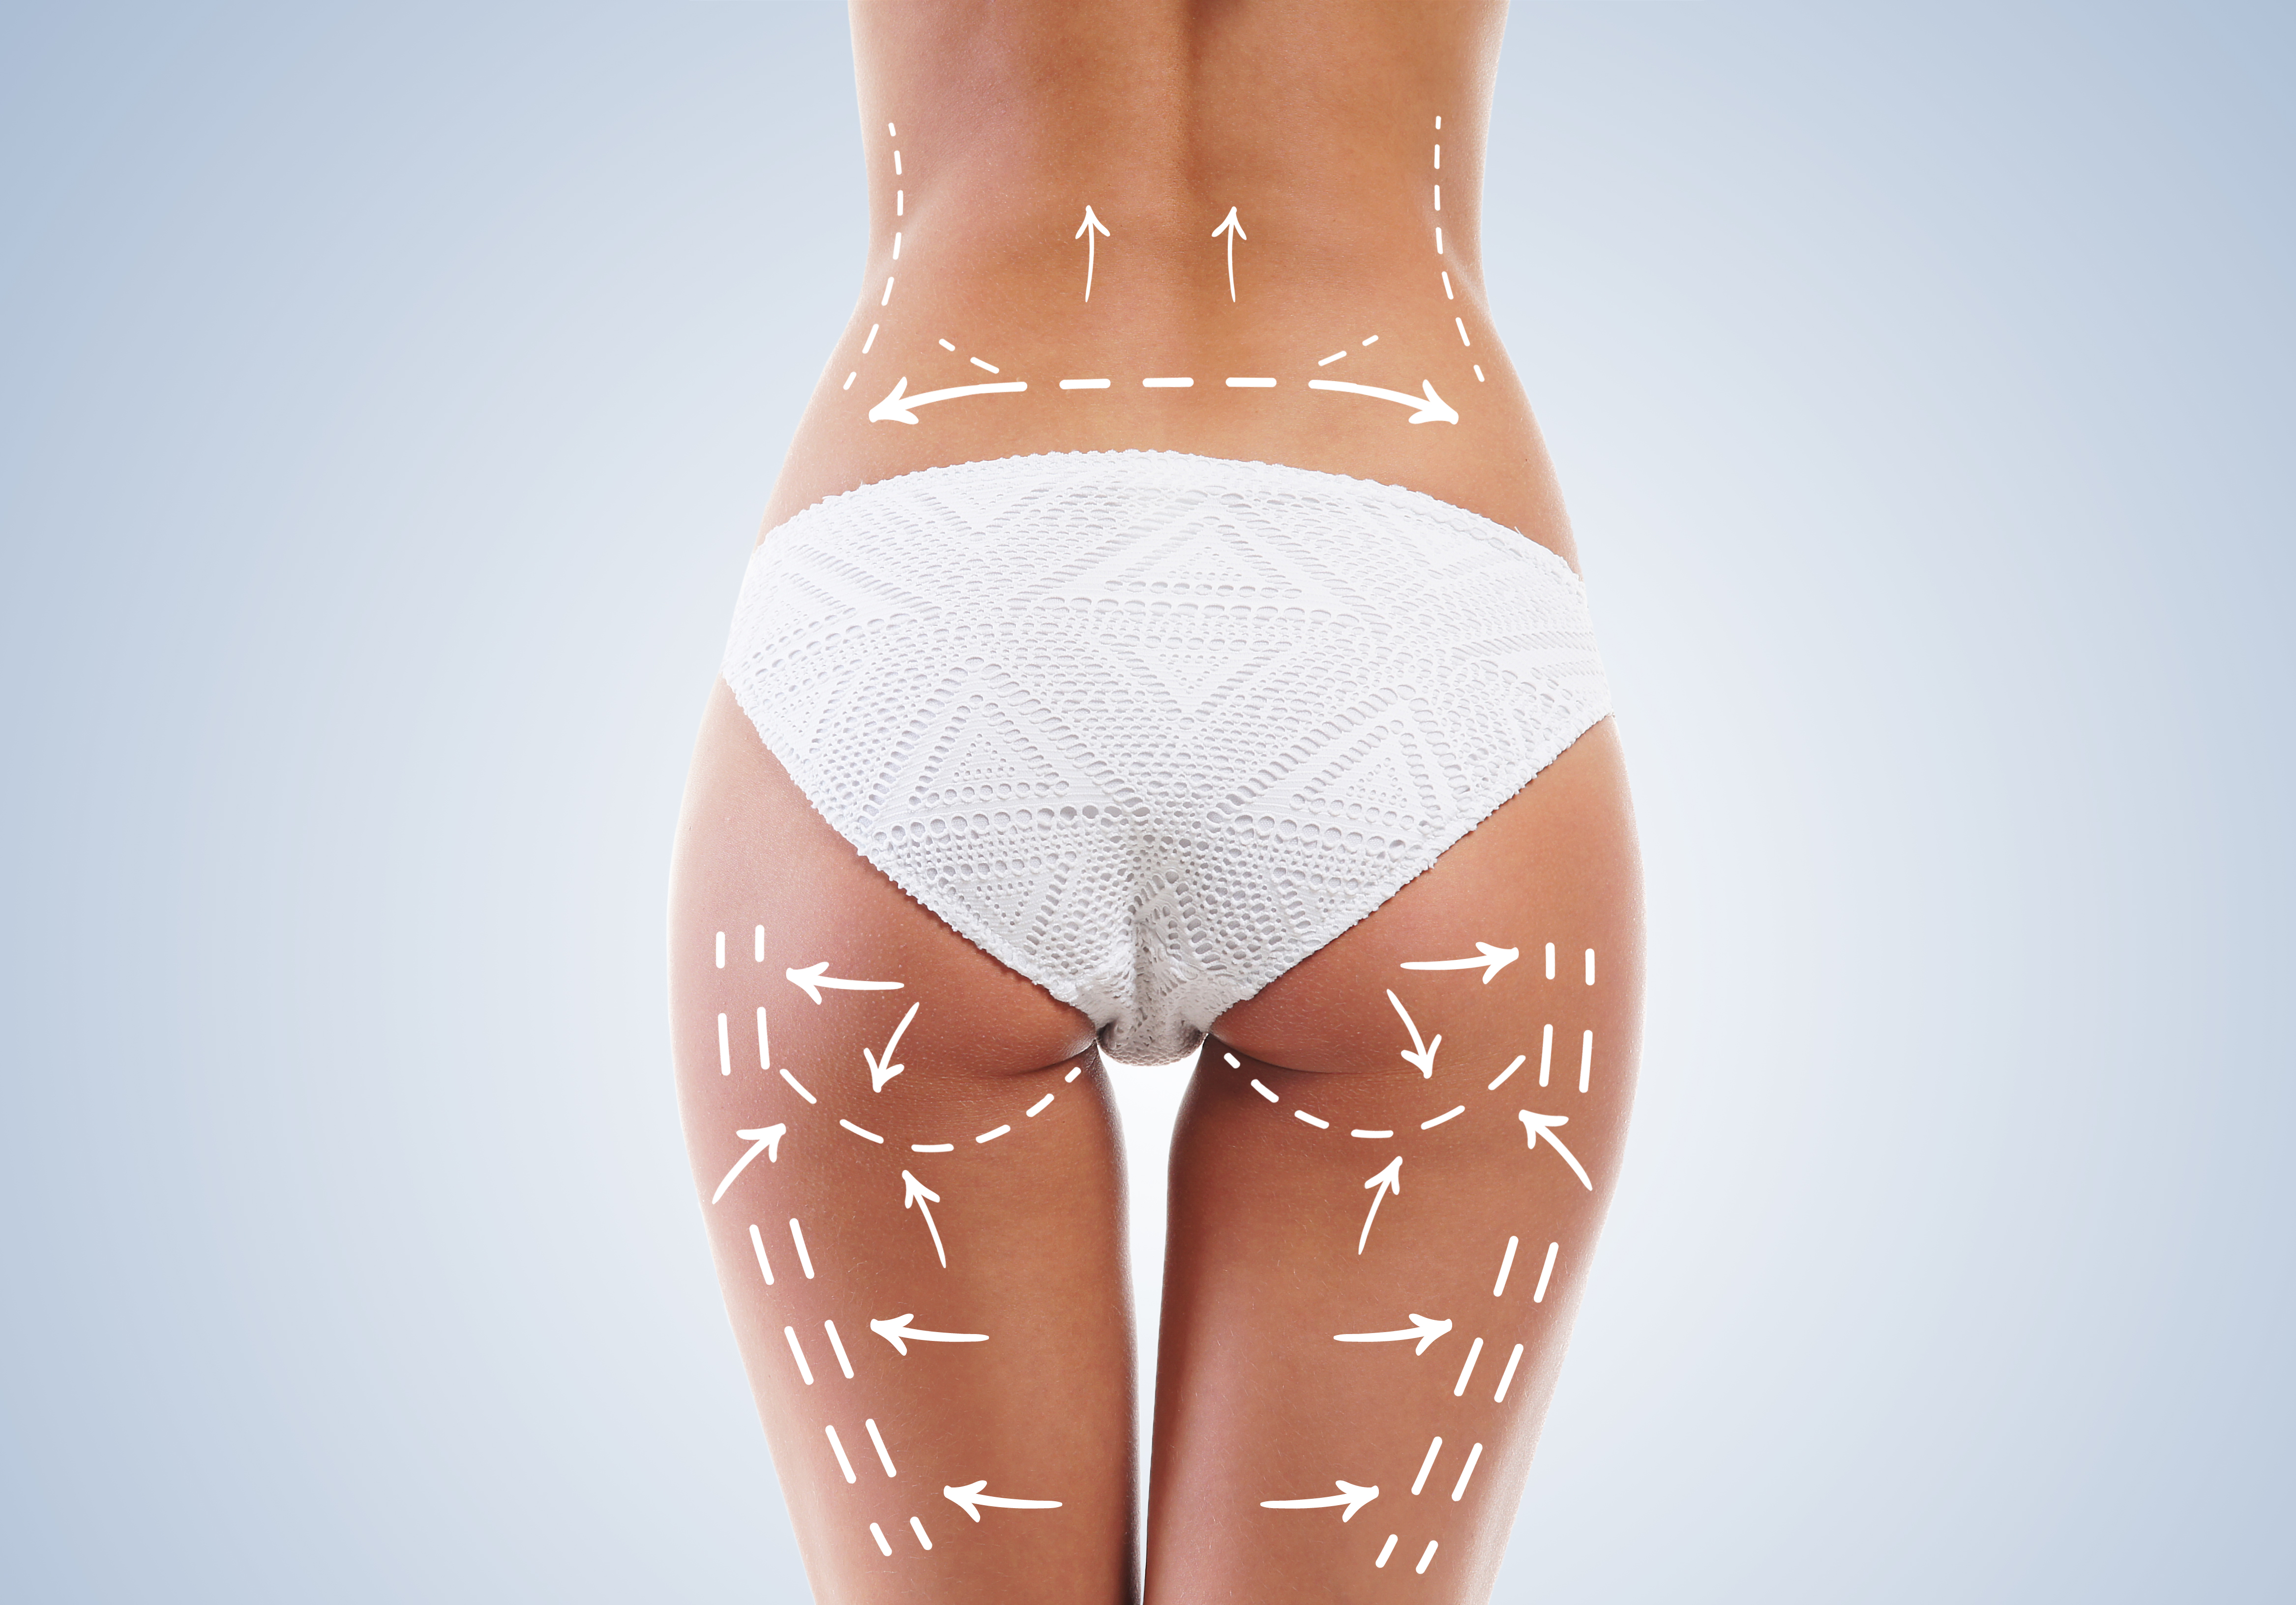 Lipofirm Pro treatments Forest Hill